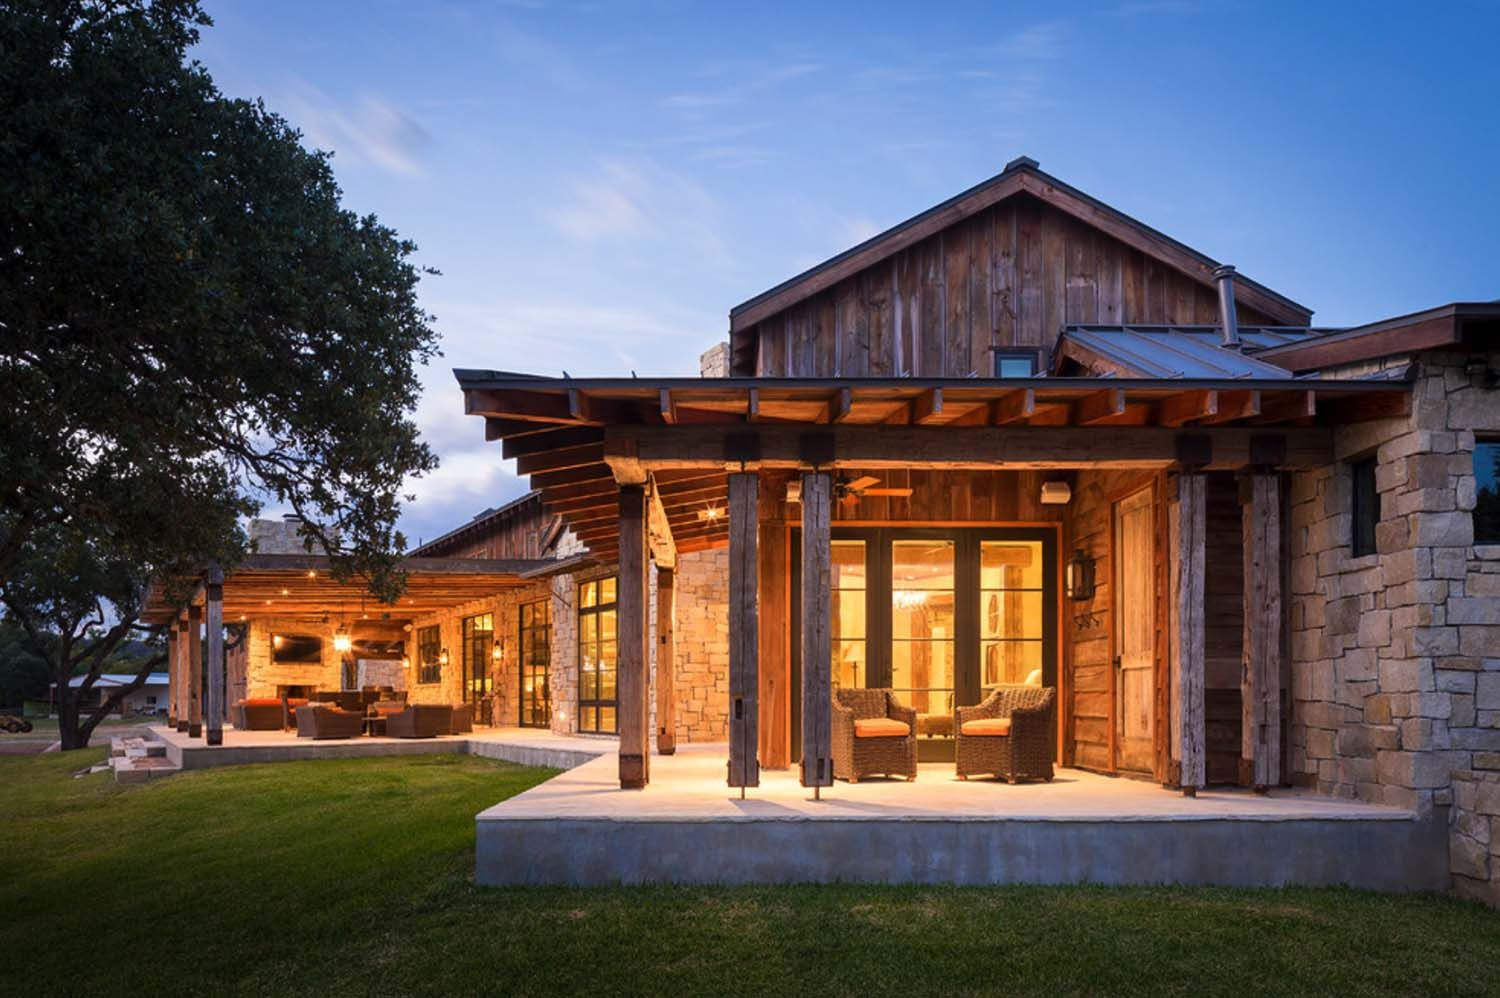 Modern Rustic Barn Style Retreat In Texas Hill Country Ranch House Designs Ranch Style Homes Rustic Houses Exterior